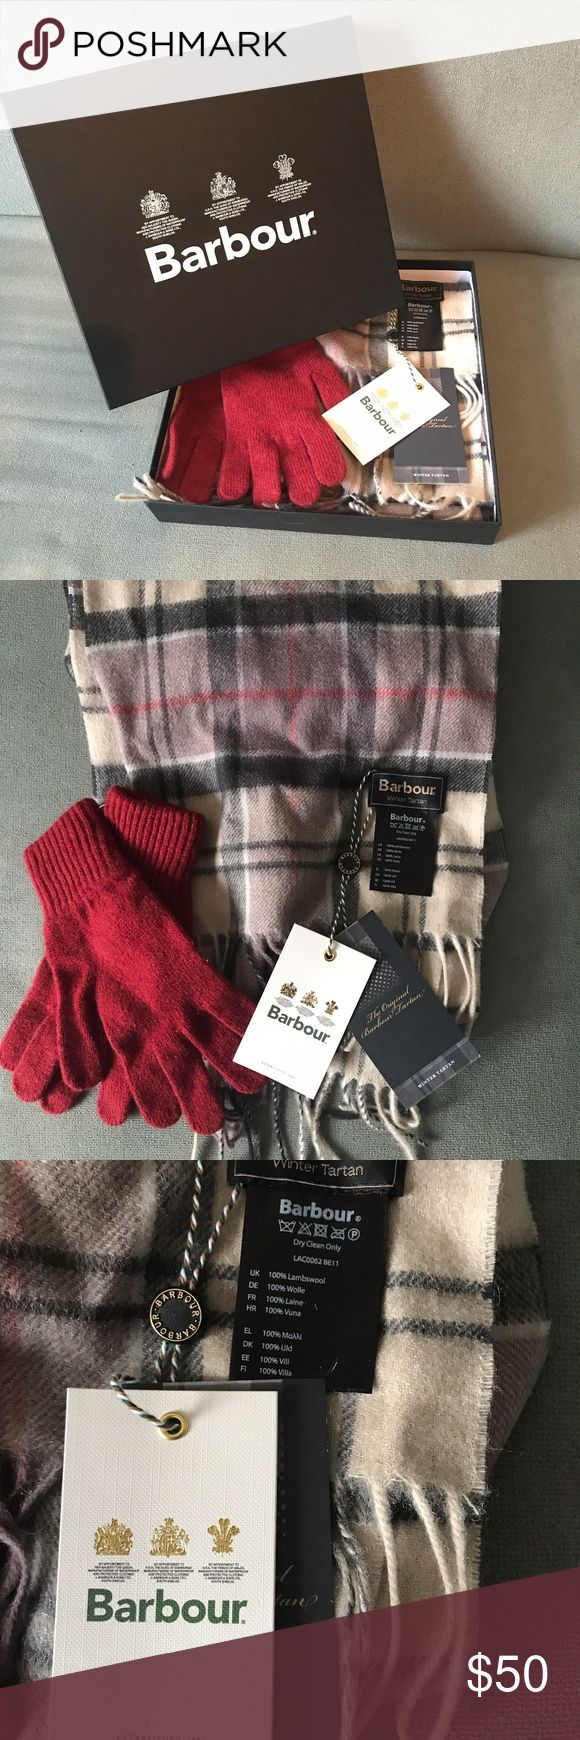 Barbour Scarf and Glove Set NWT Barbour Ladies Lambswool Gift Set in Neutral Tan. Really soft and perfect for winter. Includes Barbour box! Barbour Accessories Scarves & Wraps